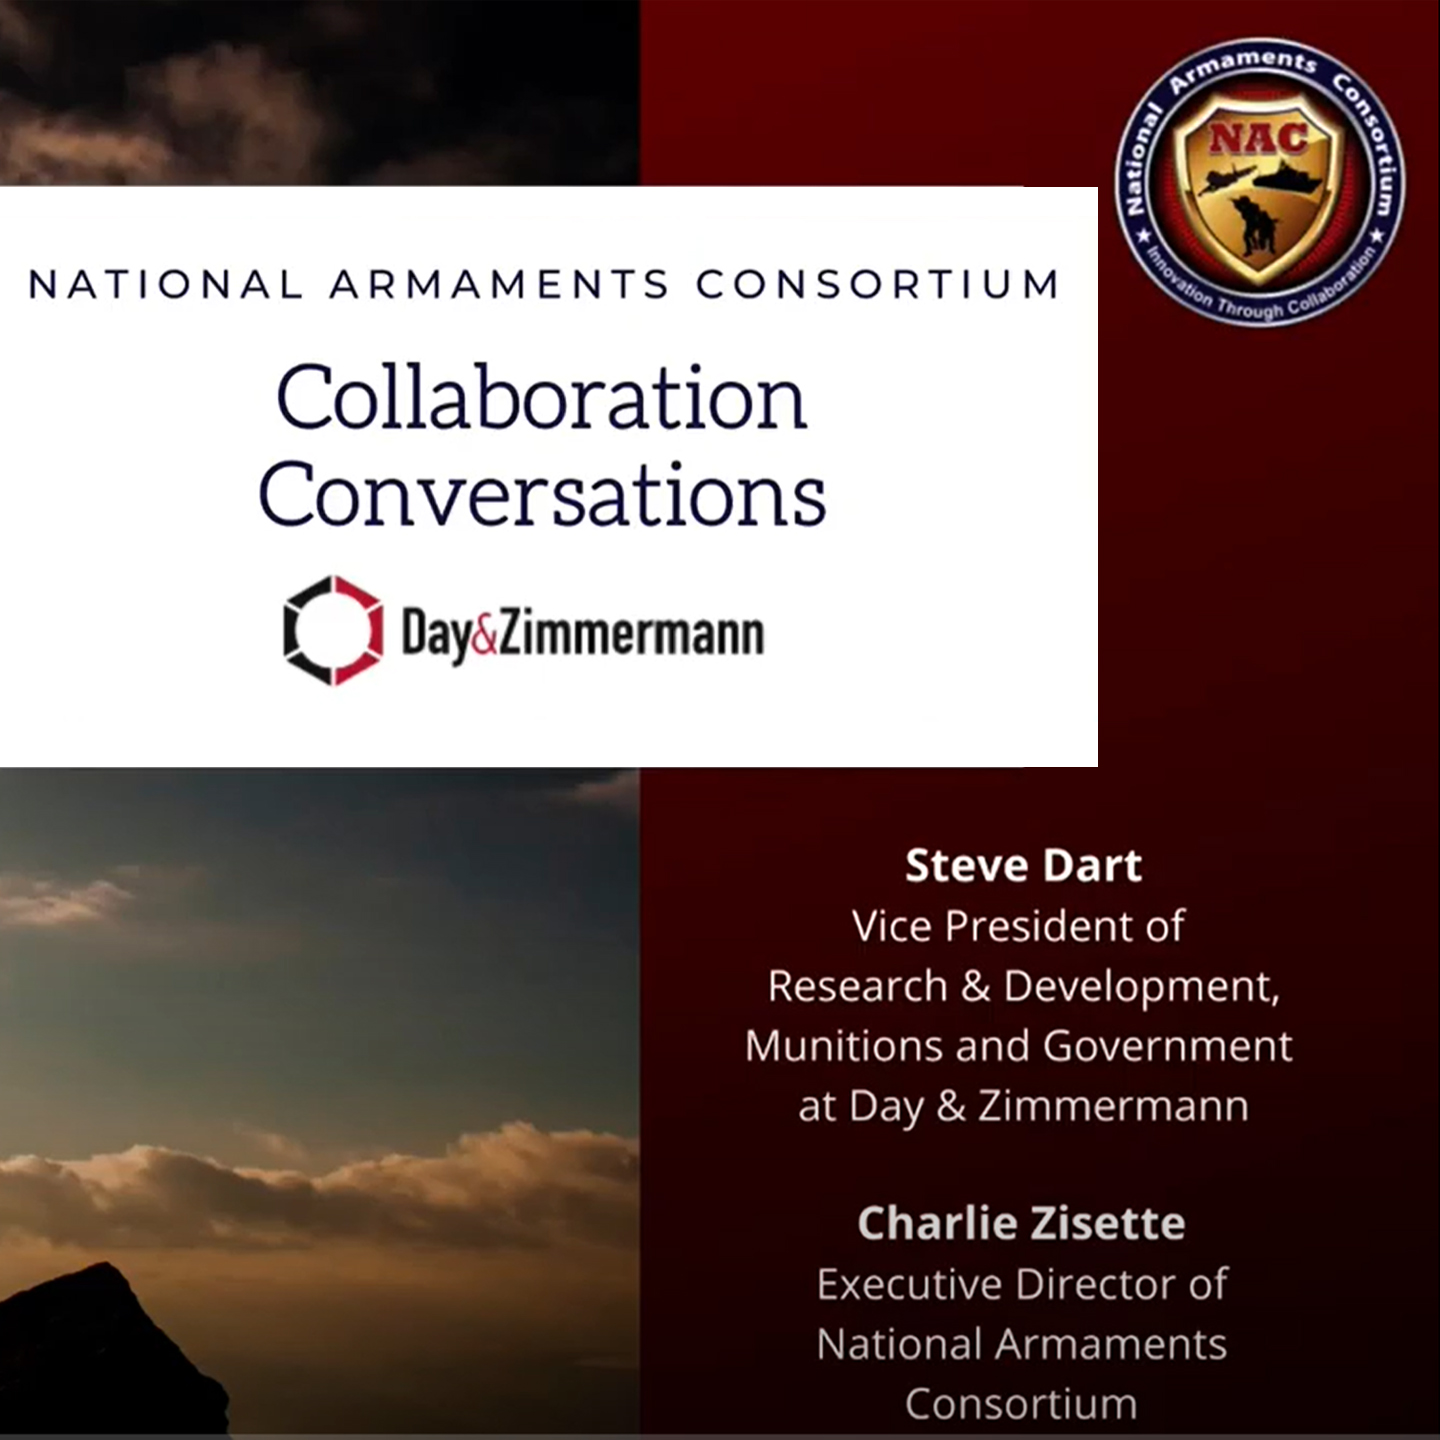 National Armaments Consortium Collaboration Conversations with Day & Zimmerman: Steve Dart and Charlie Zisette